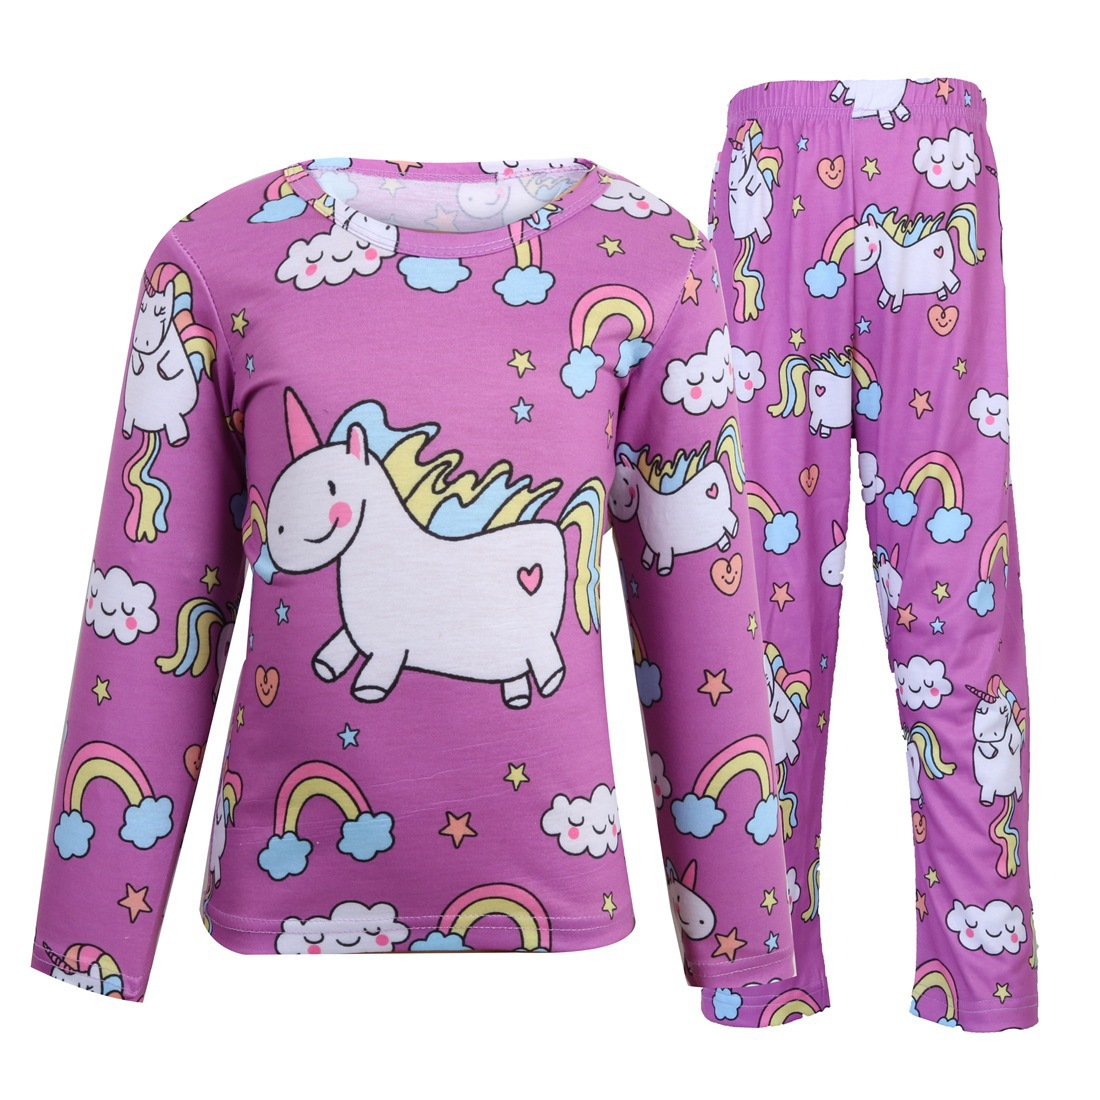 high quality 2019 Children clothing cartoon unicorn underwear bottoming shirt leggings suit girls home service girls outfits in Clothing Sets from Mother Kids